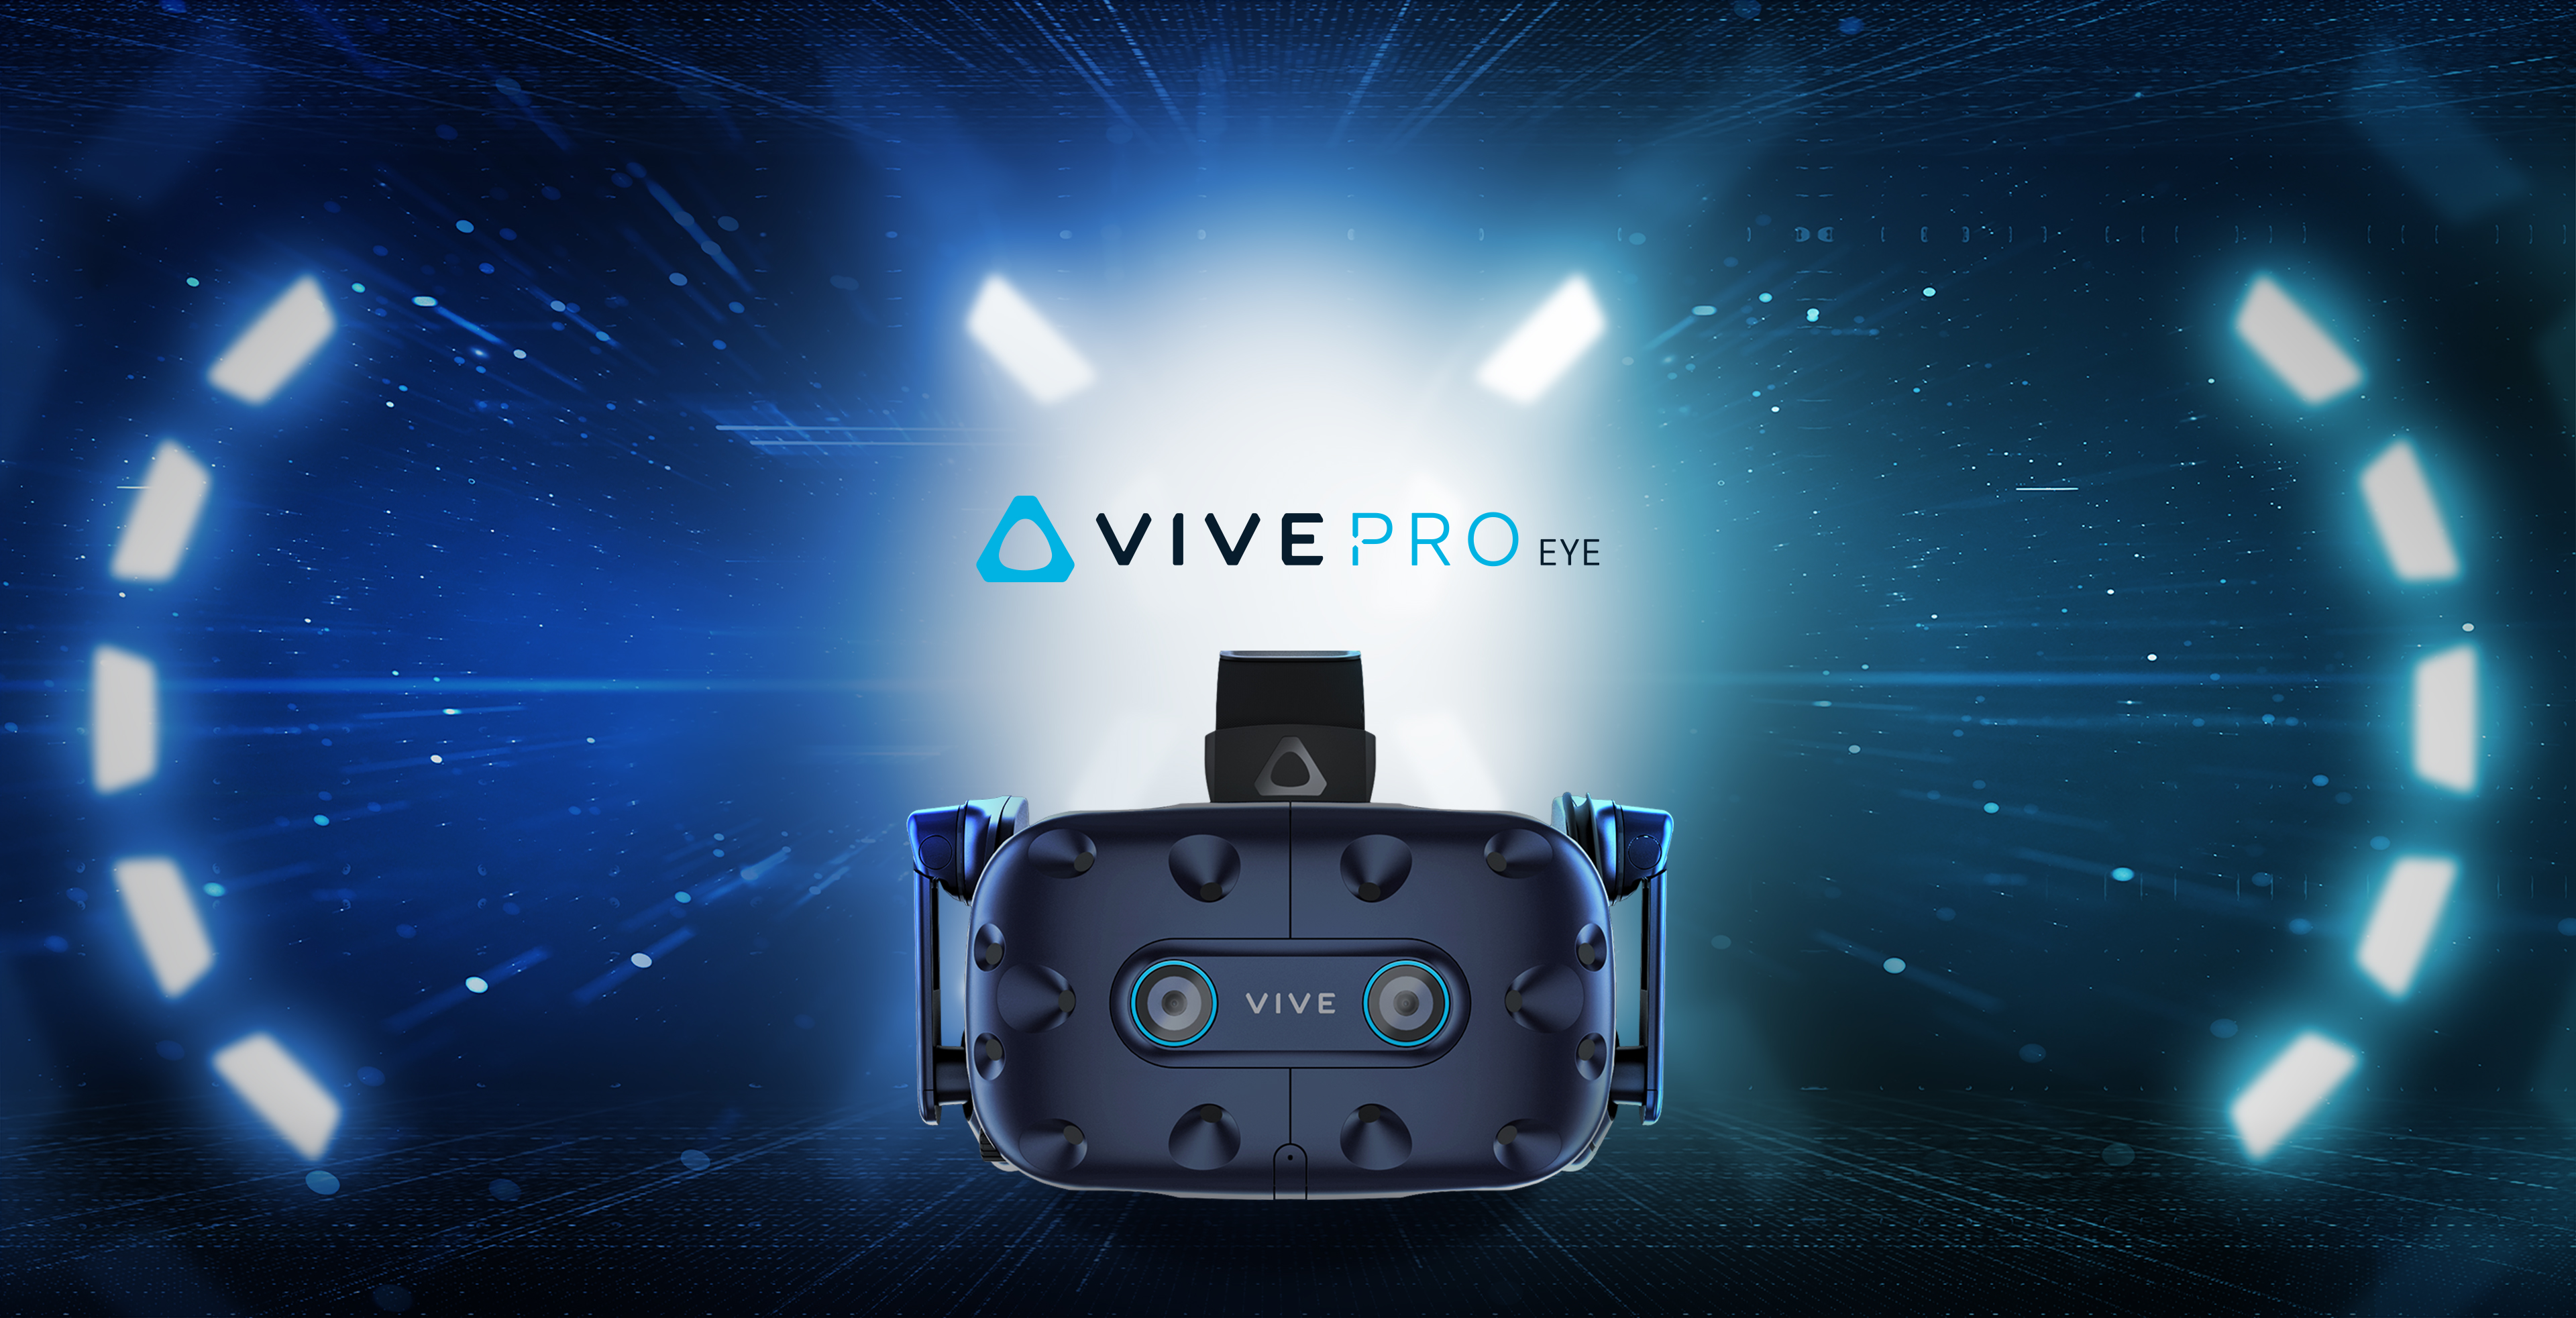 Vive Pro Eye Launches Today In Europe For £1,499